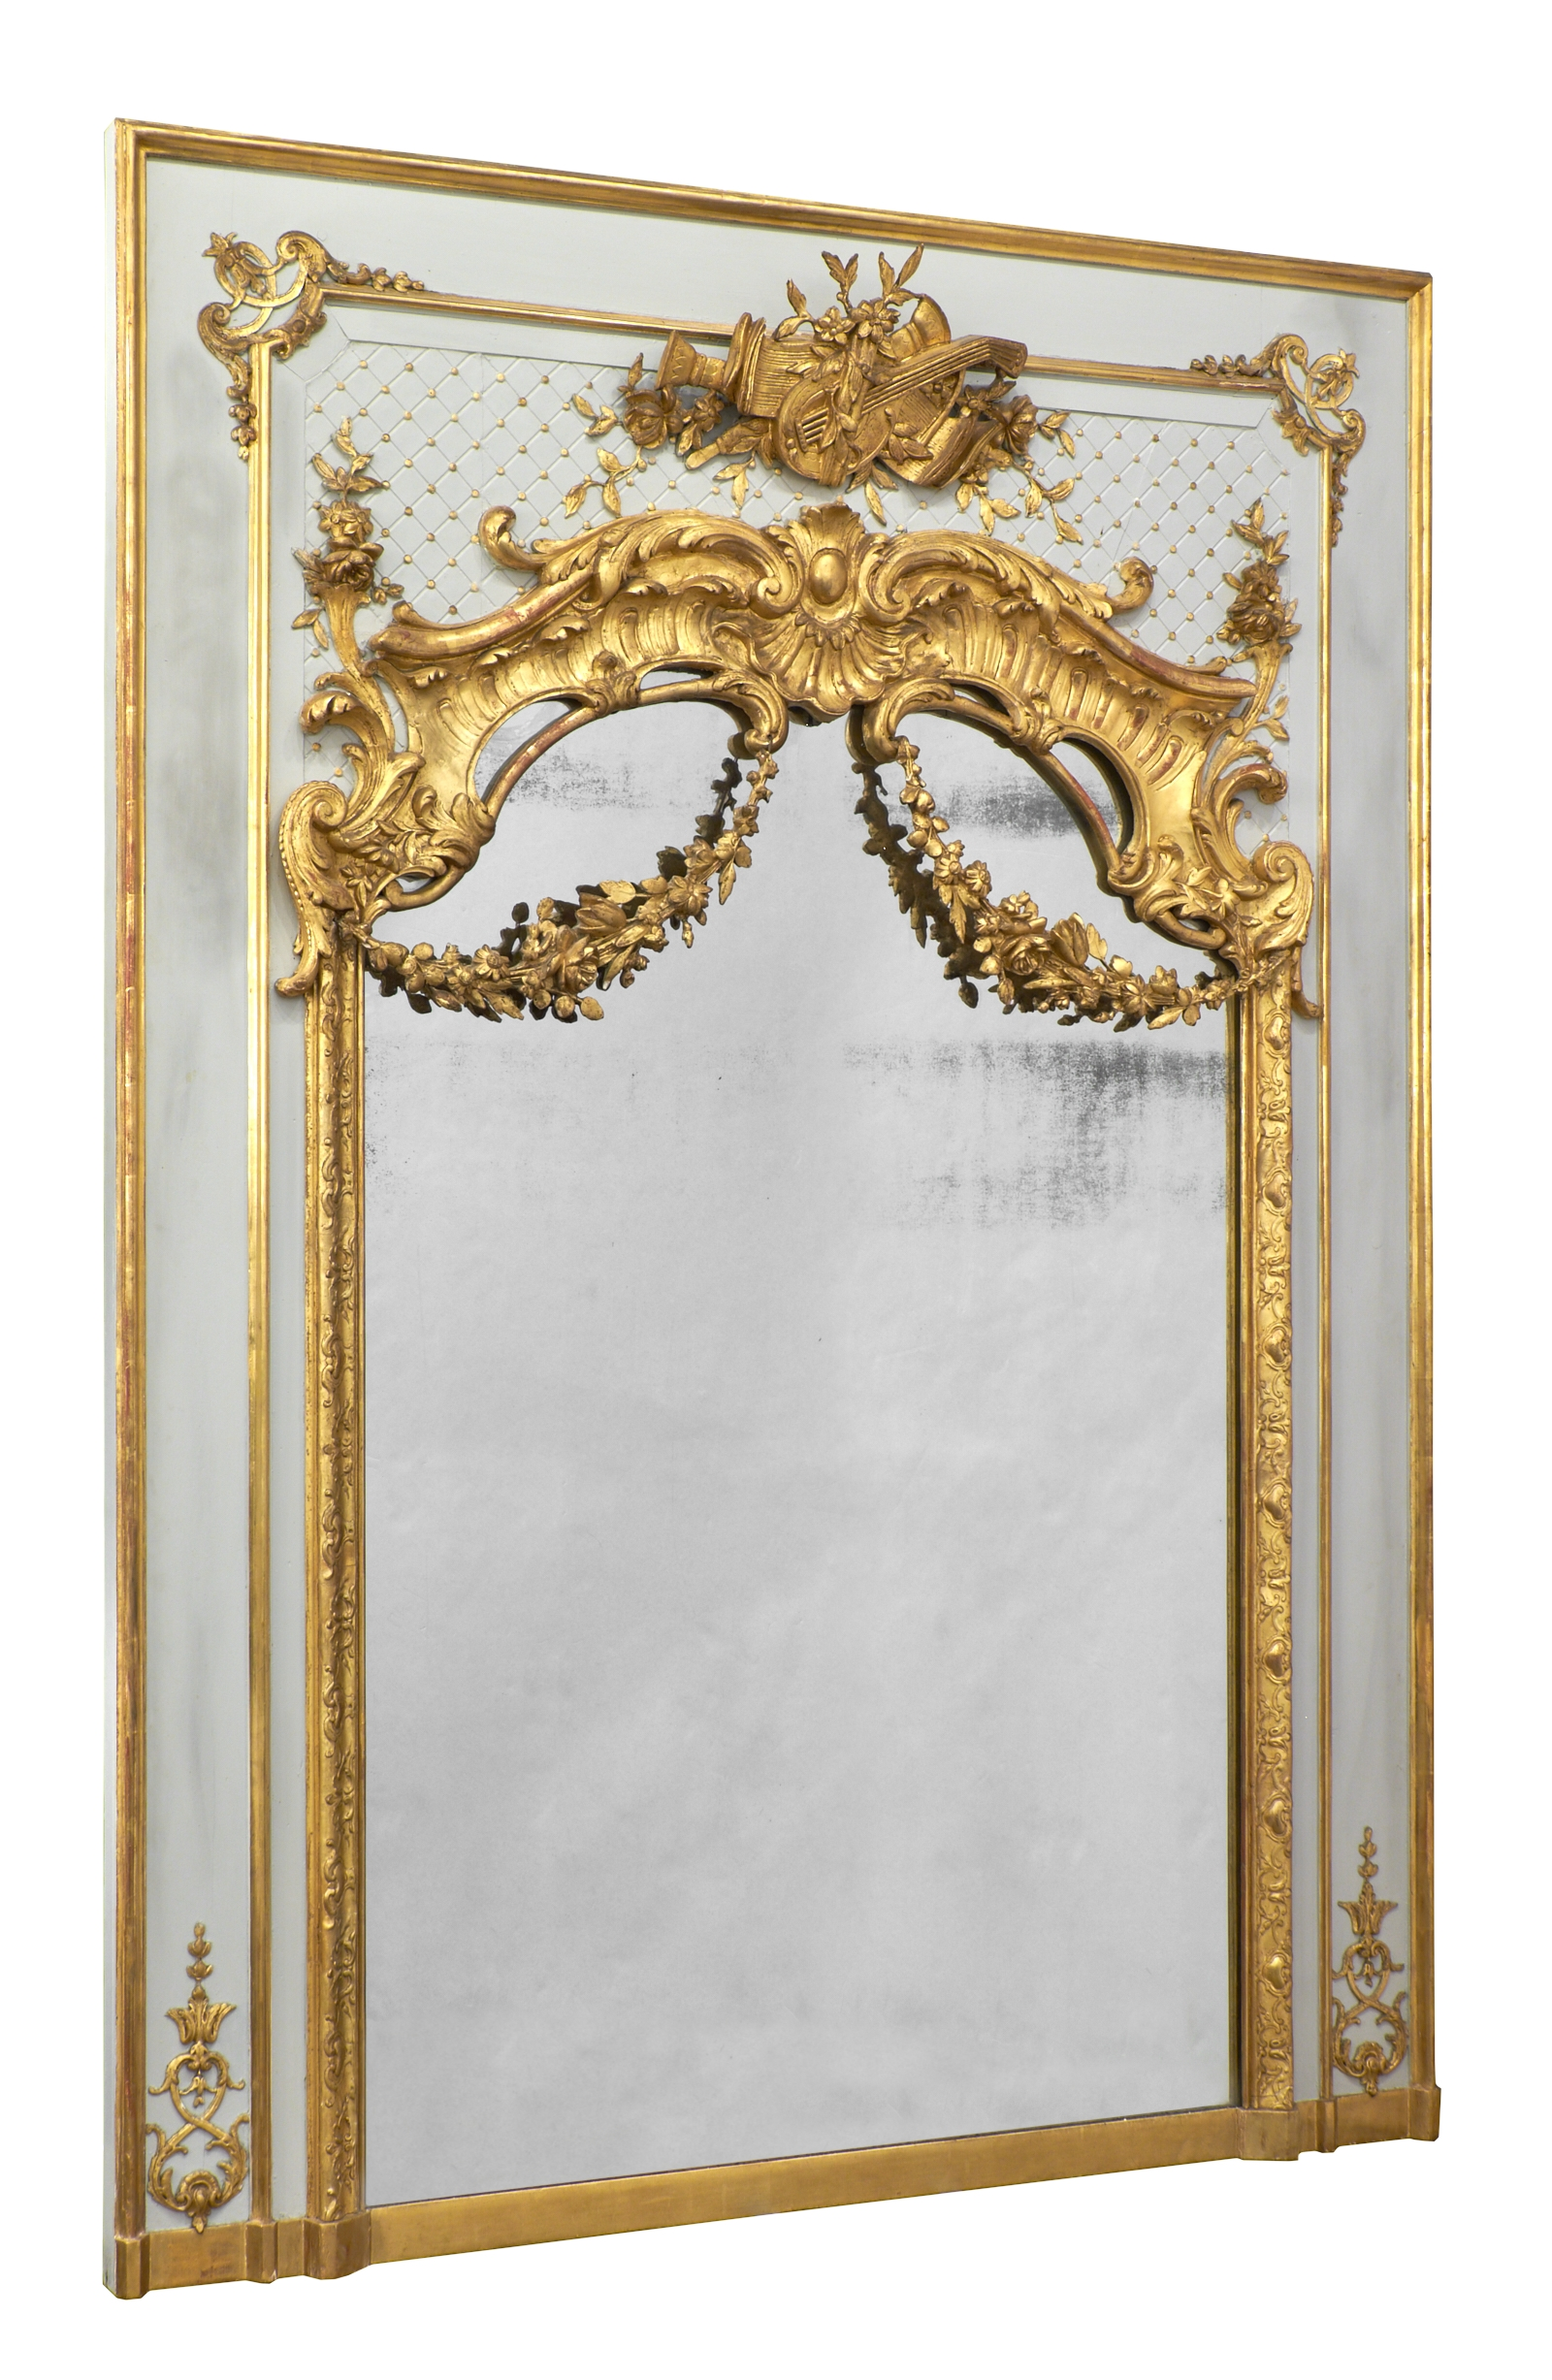 19th Century Louis Xvi Gold Leaf Trumeau Jean Marc Fray Pertaining To Ornate Gold Mirror (Image 2 of 15)